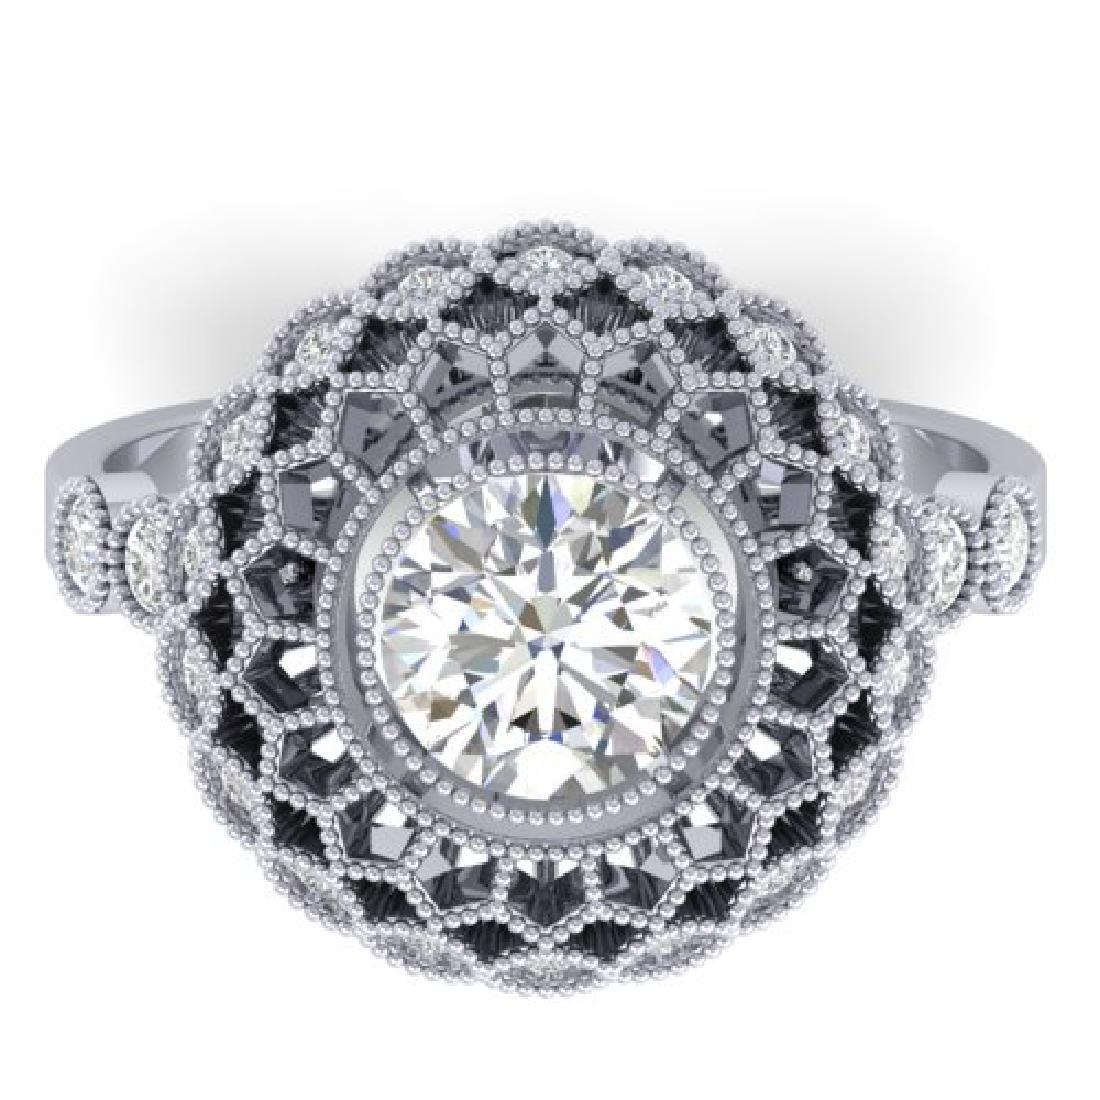 1.5 CTW Certified VS/SI Diamond Art Deco Ring 18K White